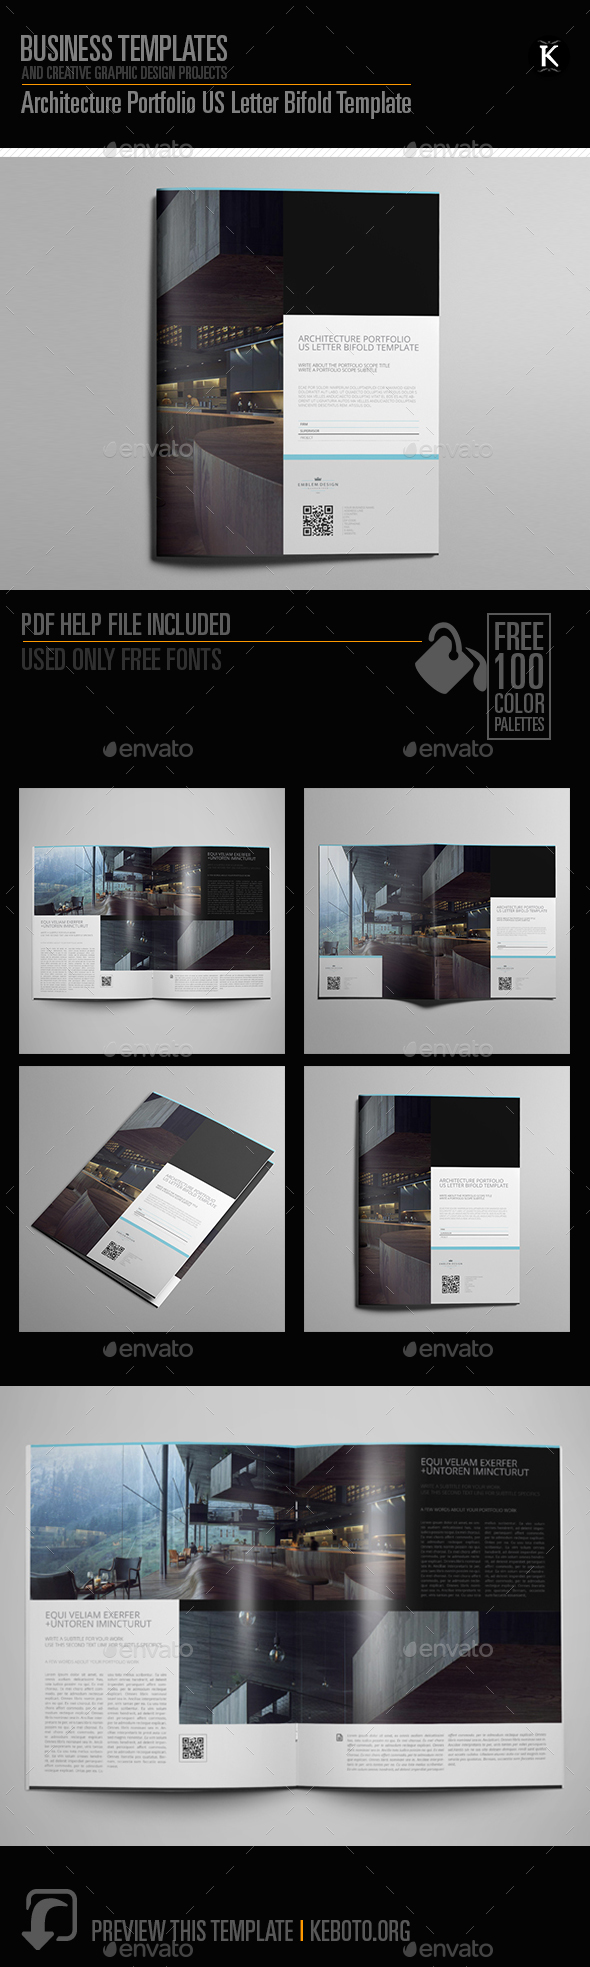 architecture portfolio us letter bifold template by keboto graphicriver. Black Bedroom Furniture Sets. Home Design Ideas